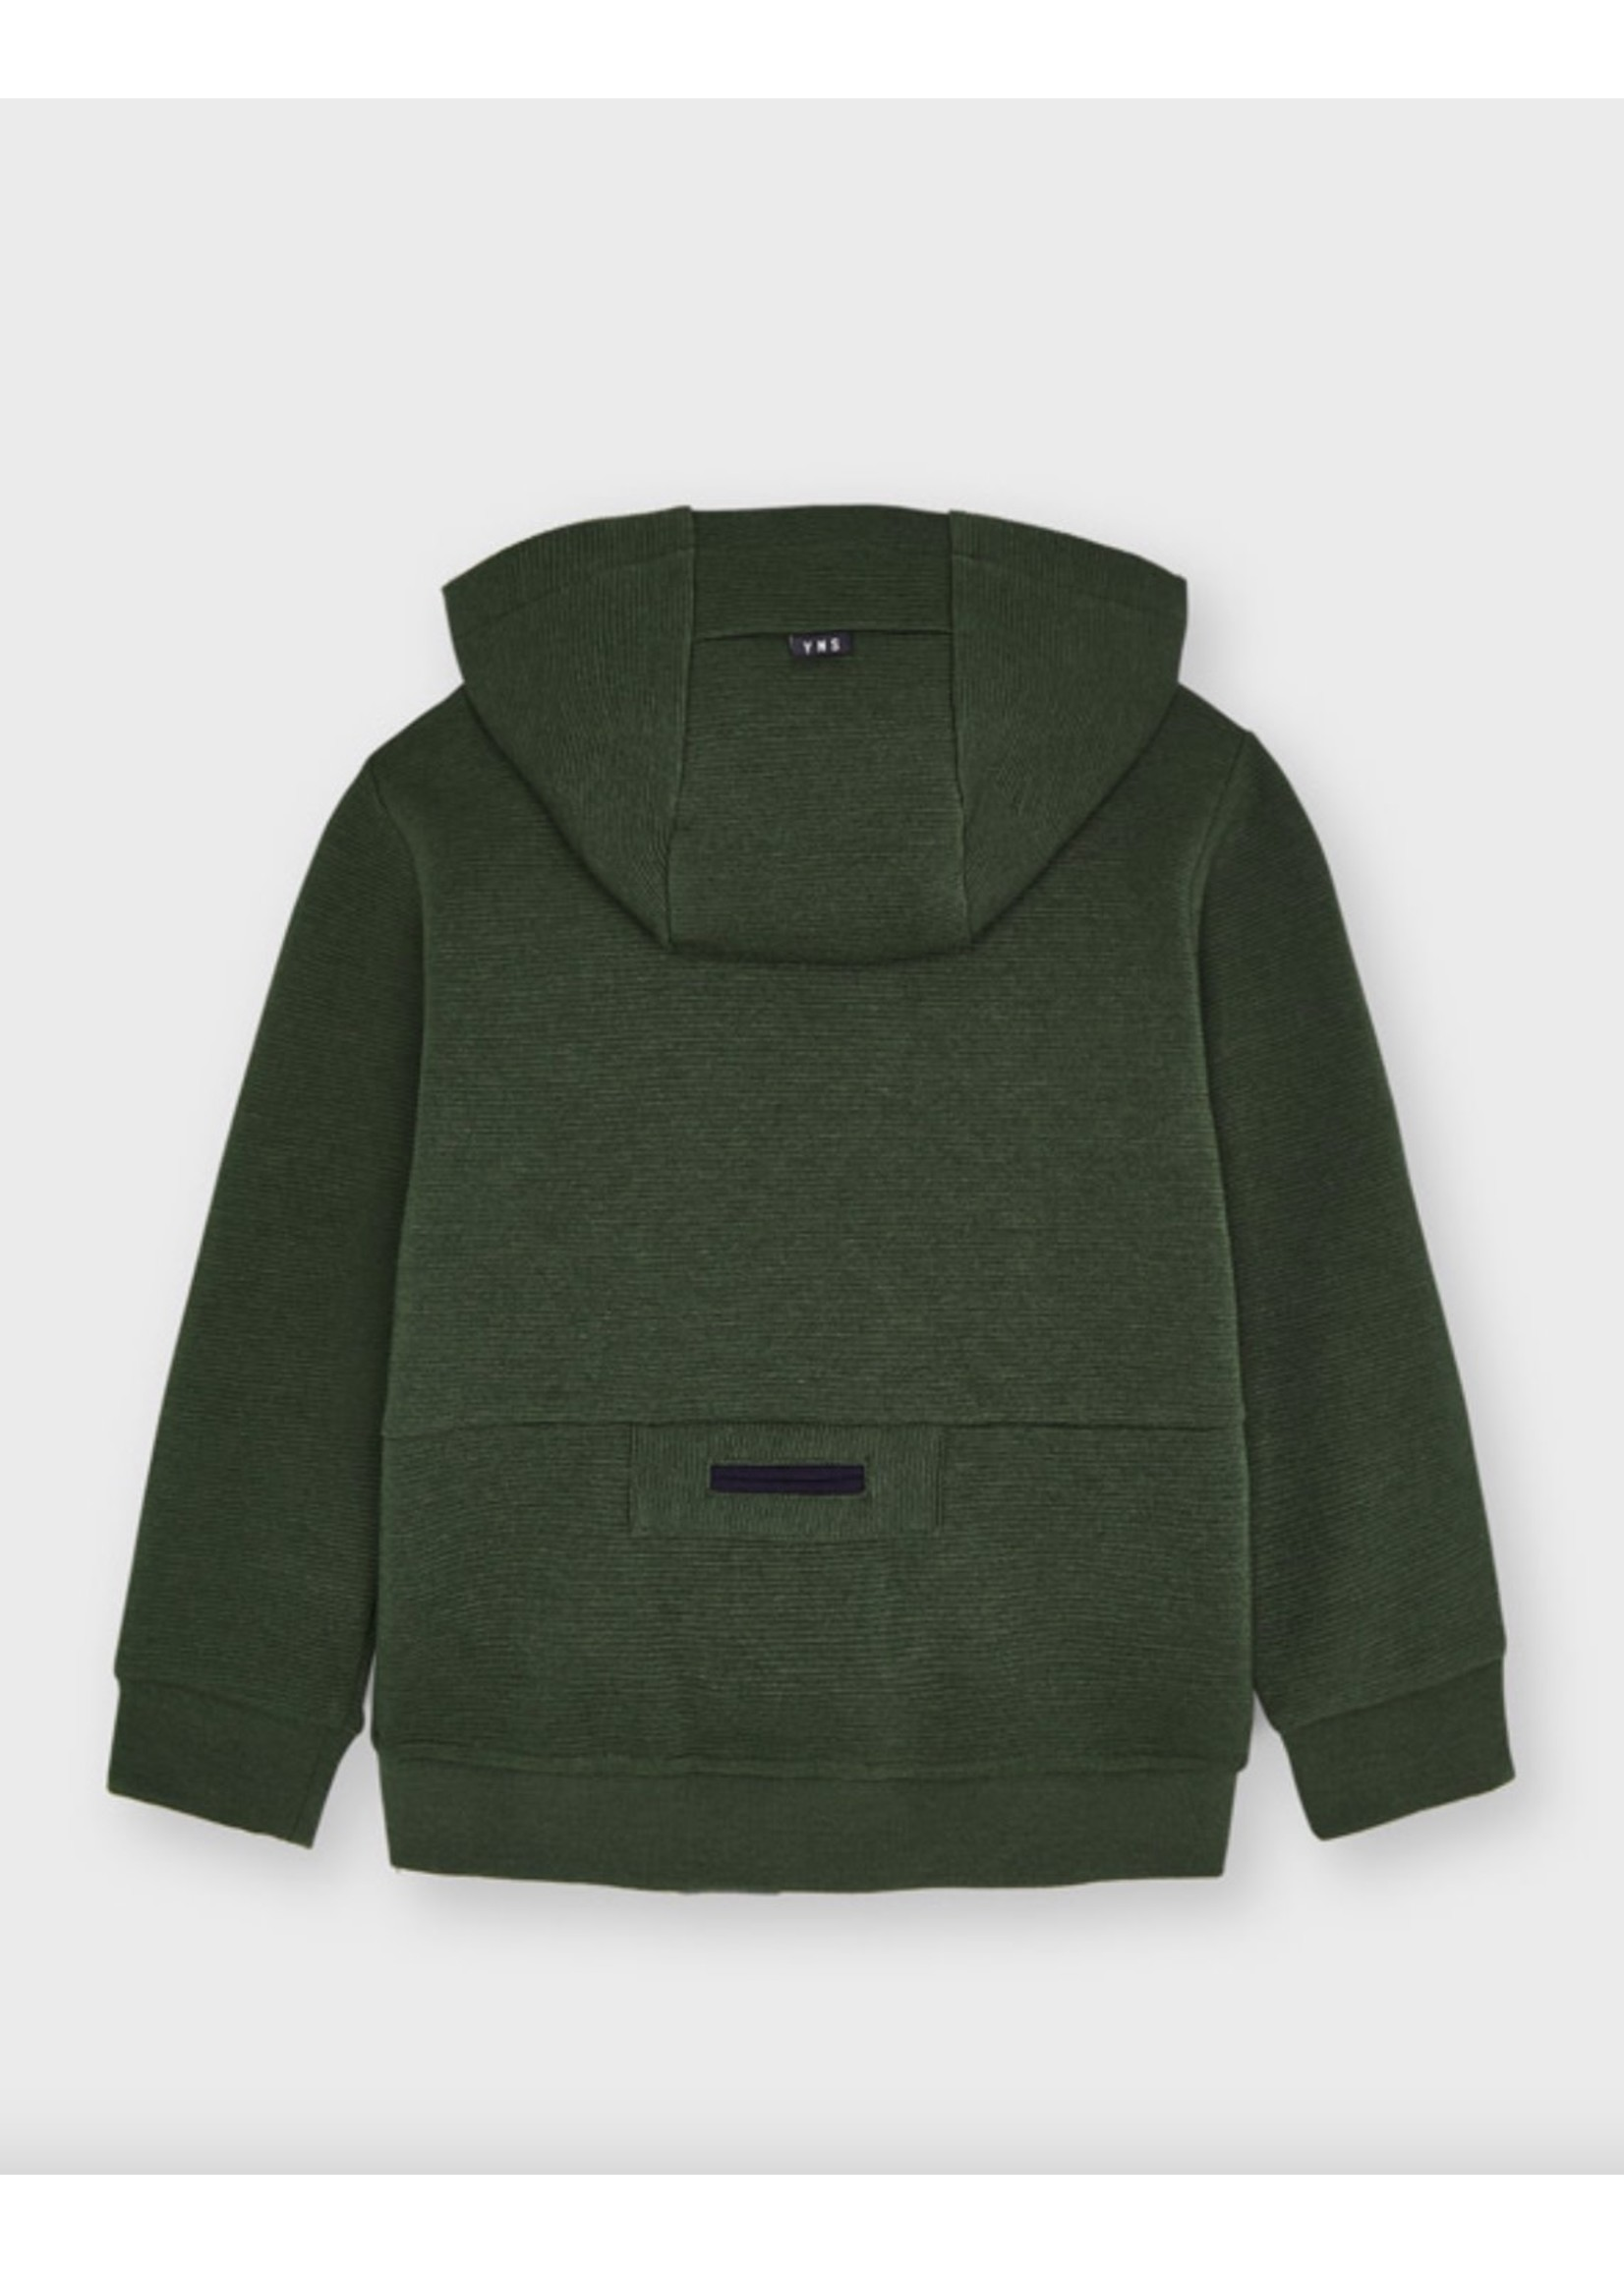 Mayoral Mayoral, Ottoman Hoodie in Dill